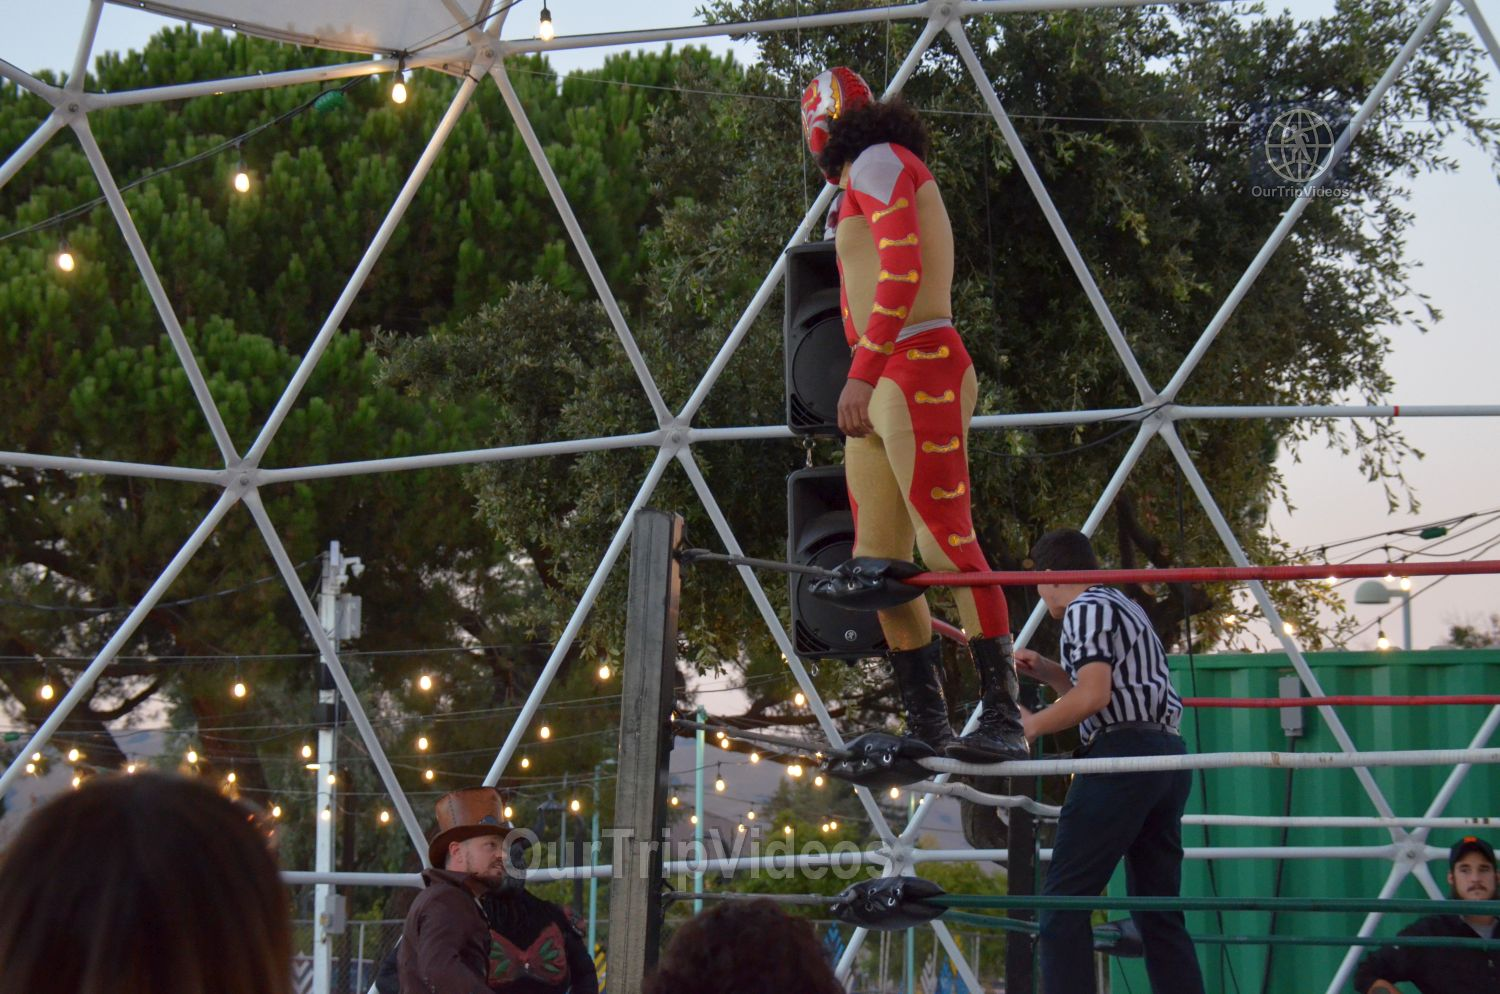 Throwdown at the Thunderdome (Luchador Wrestling), Fremont, CA, USA - Picture 4 of 25